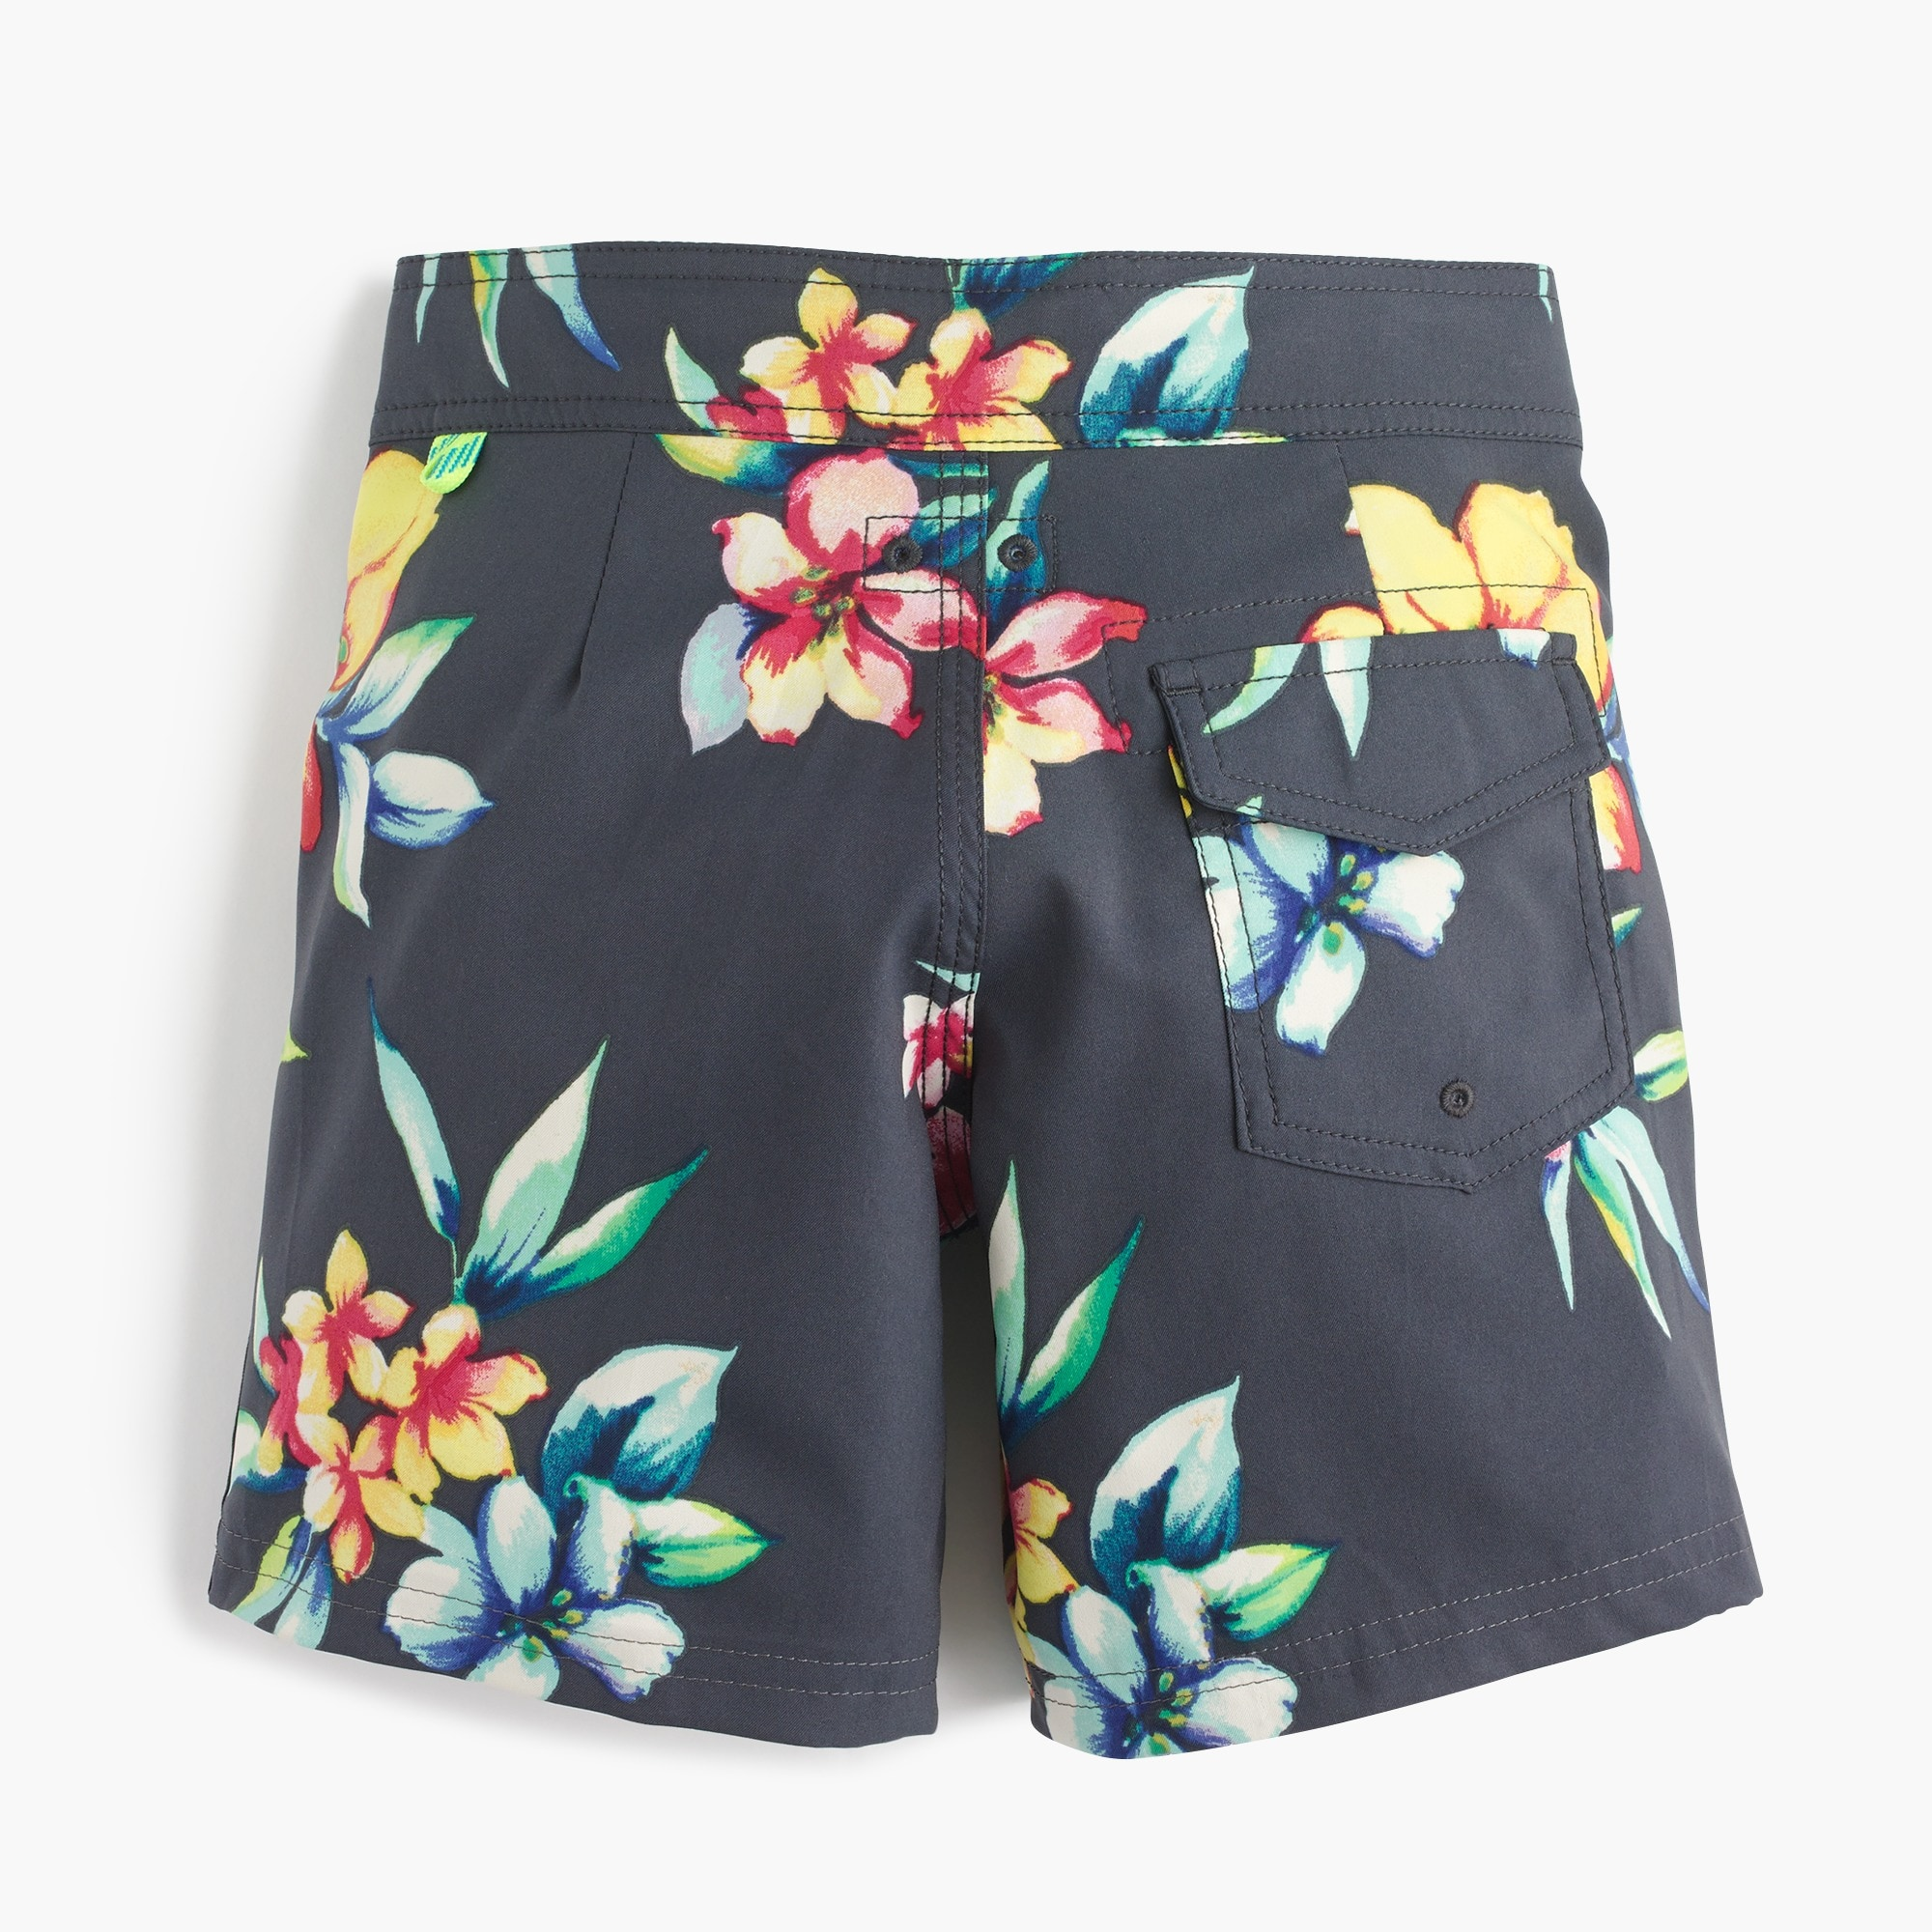 Image 2 for Boys' board short in Hawaiian floral